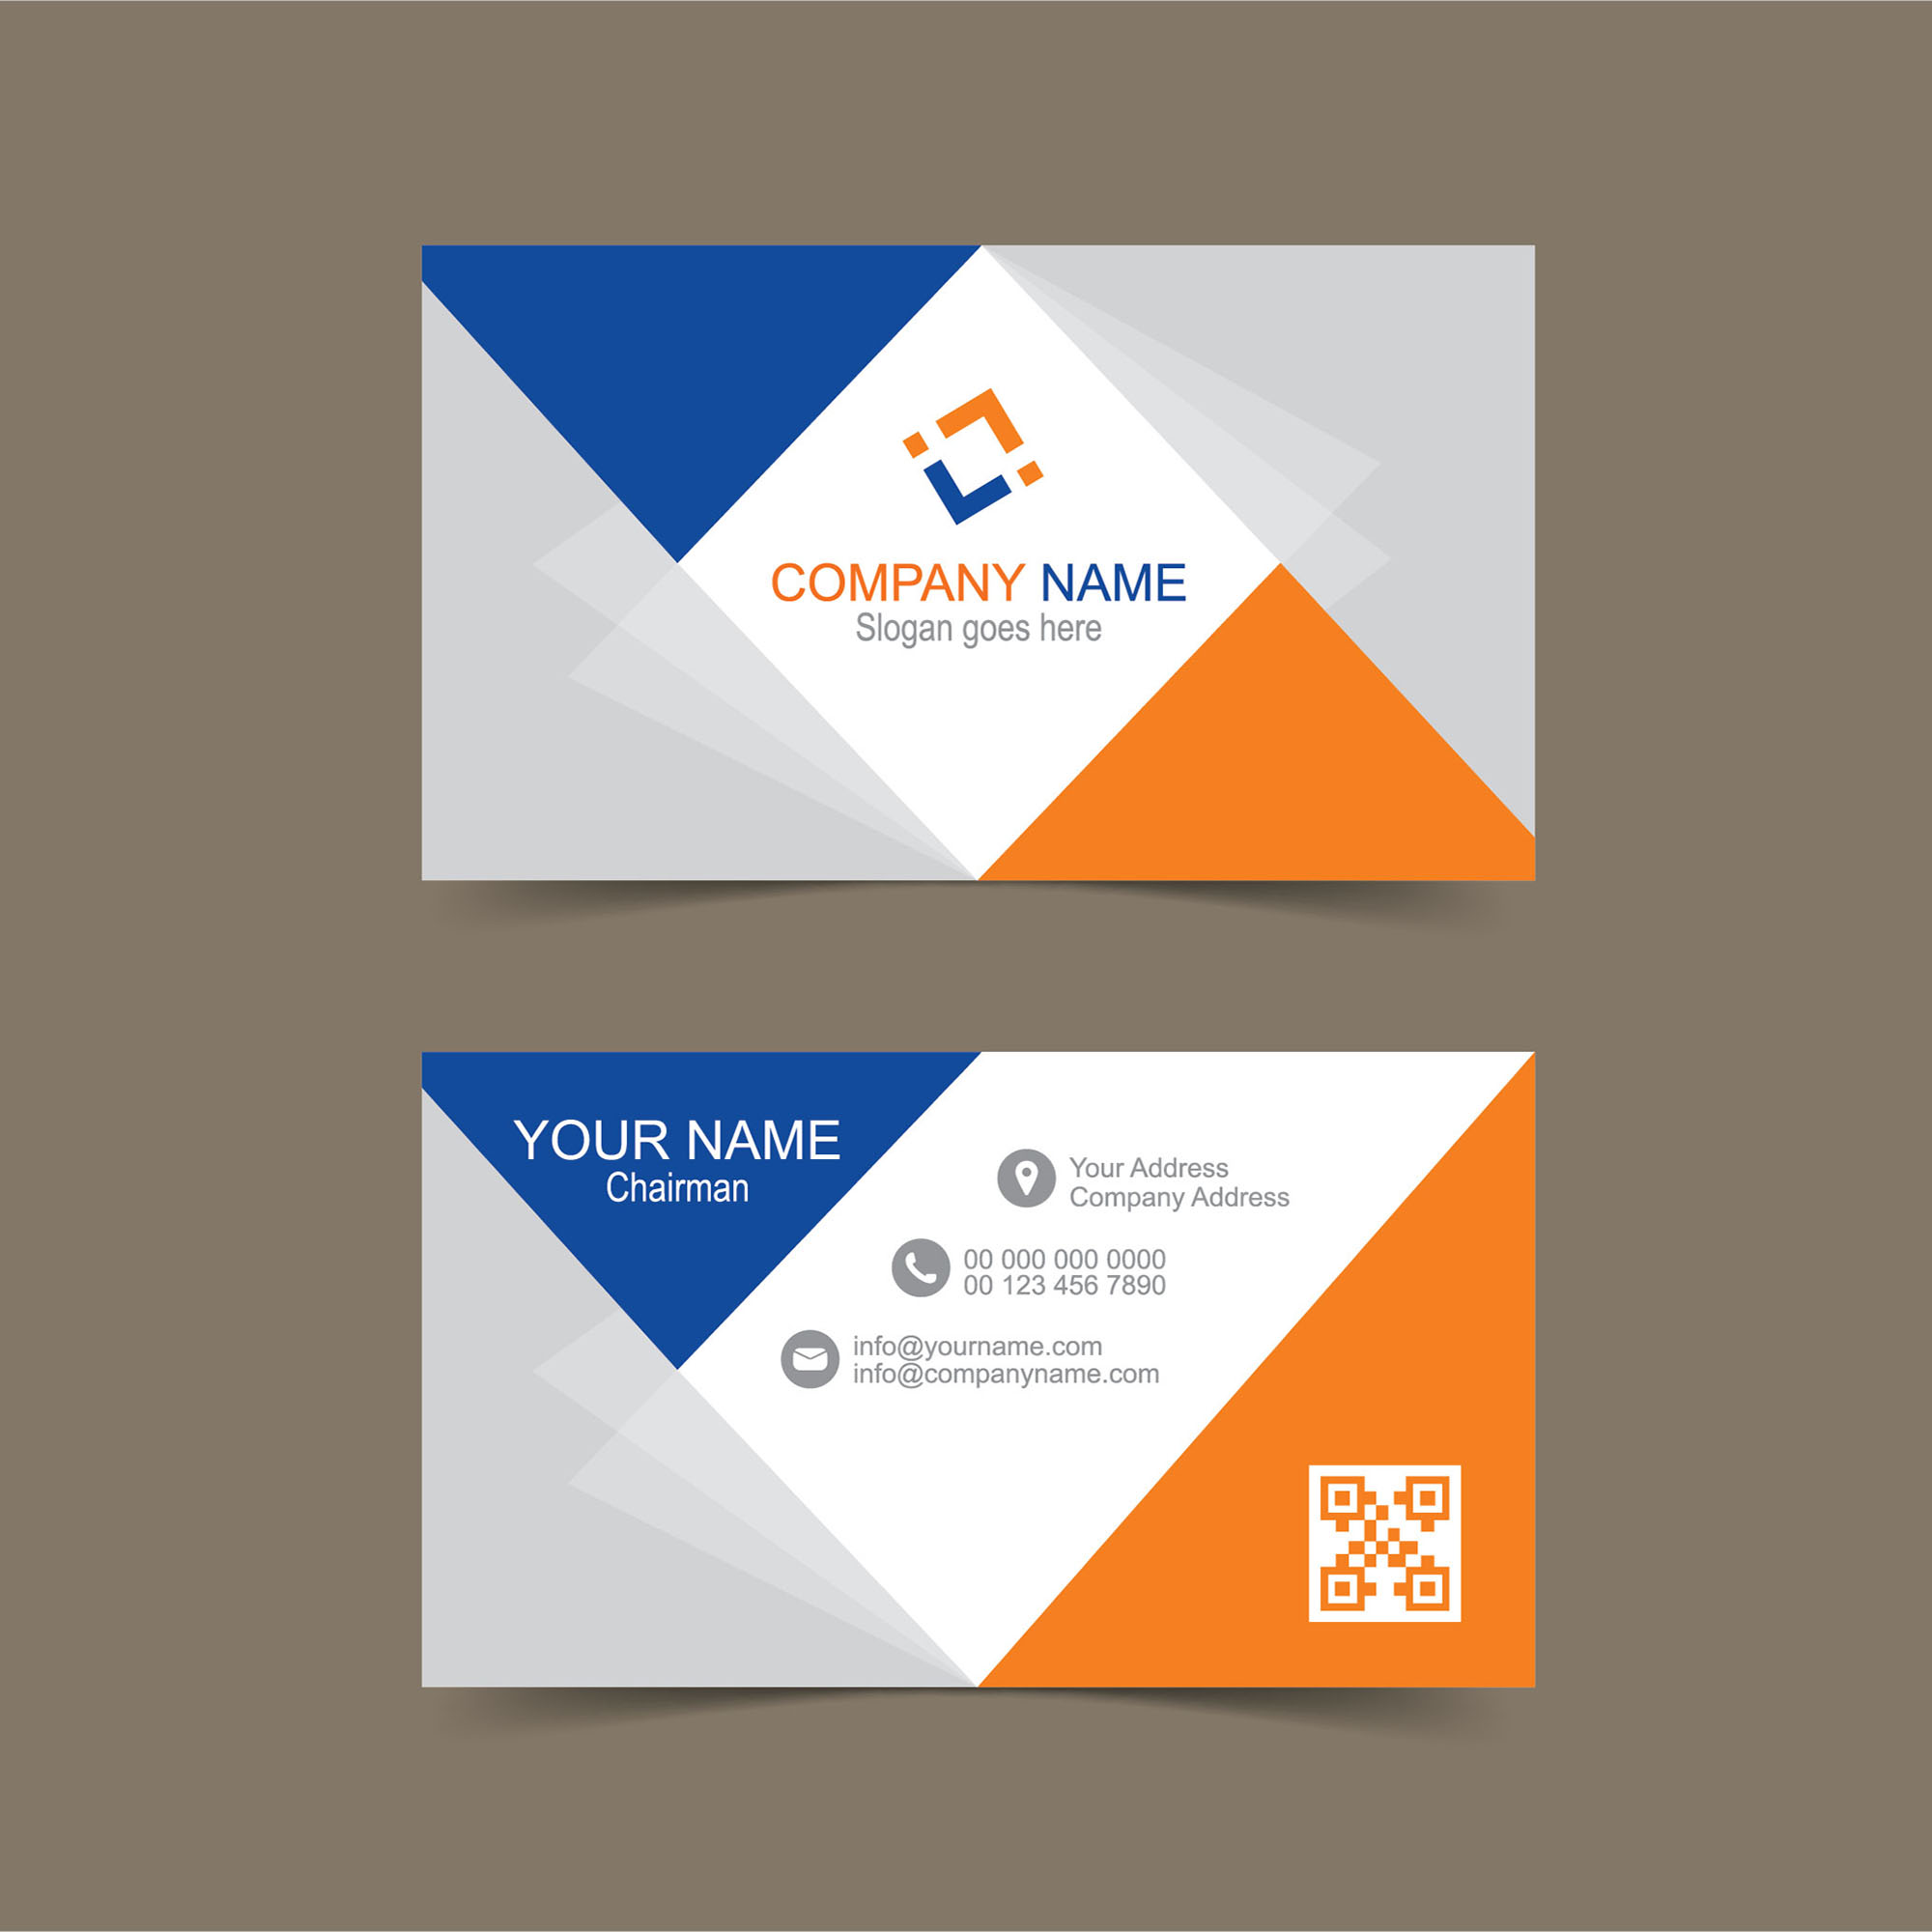 Free business card template for illustrator wisxi business card business cards business card design business card template design templates flashek Images